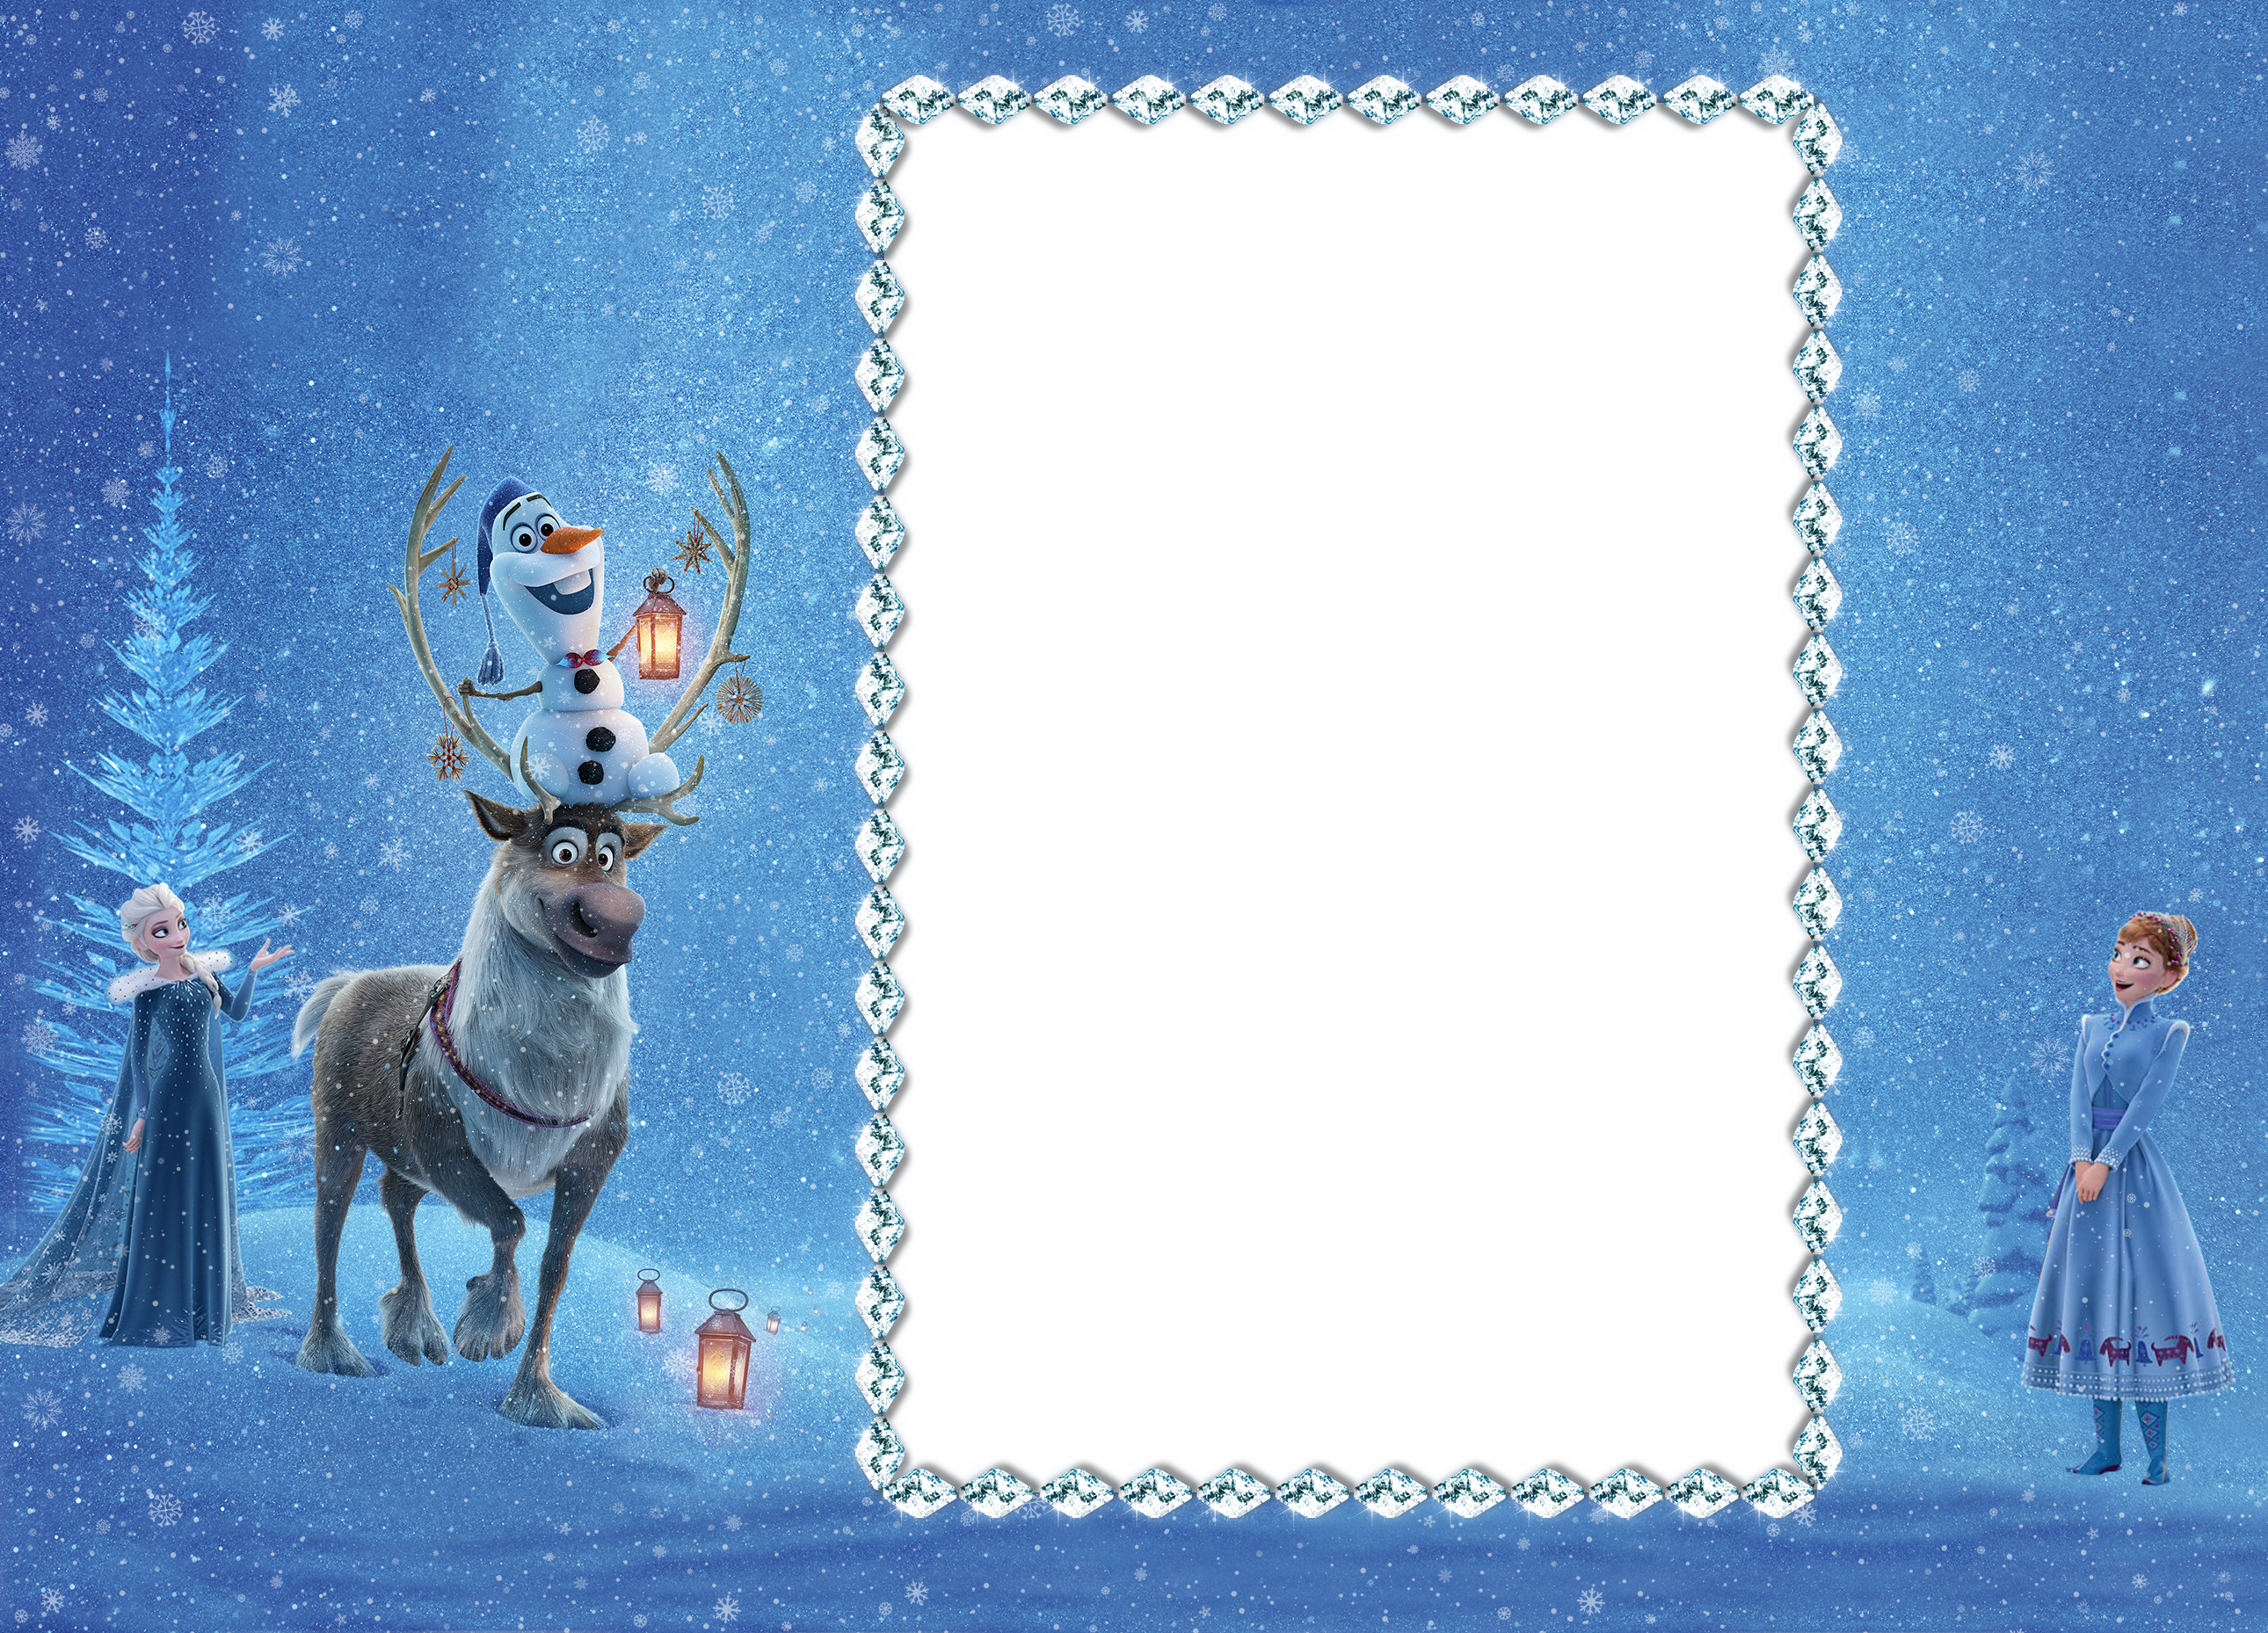 Frozen background png. Olaf adventure transparent frame